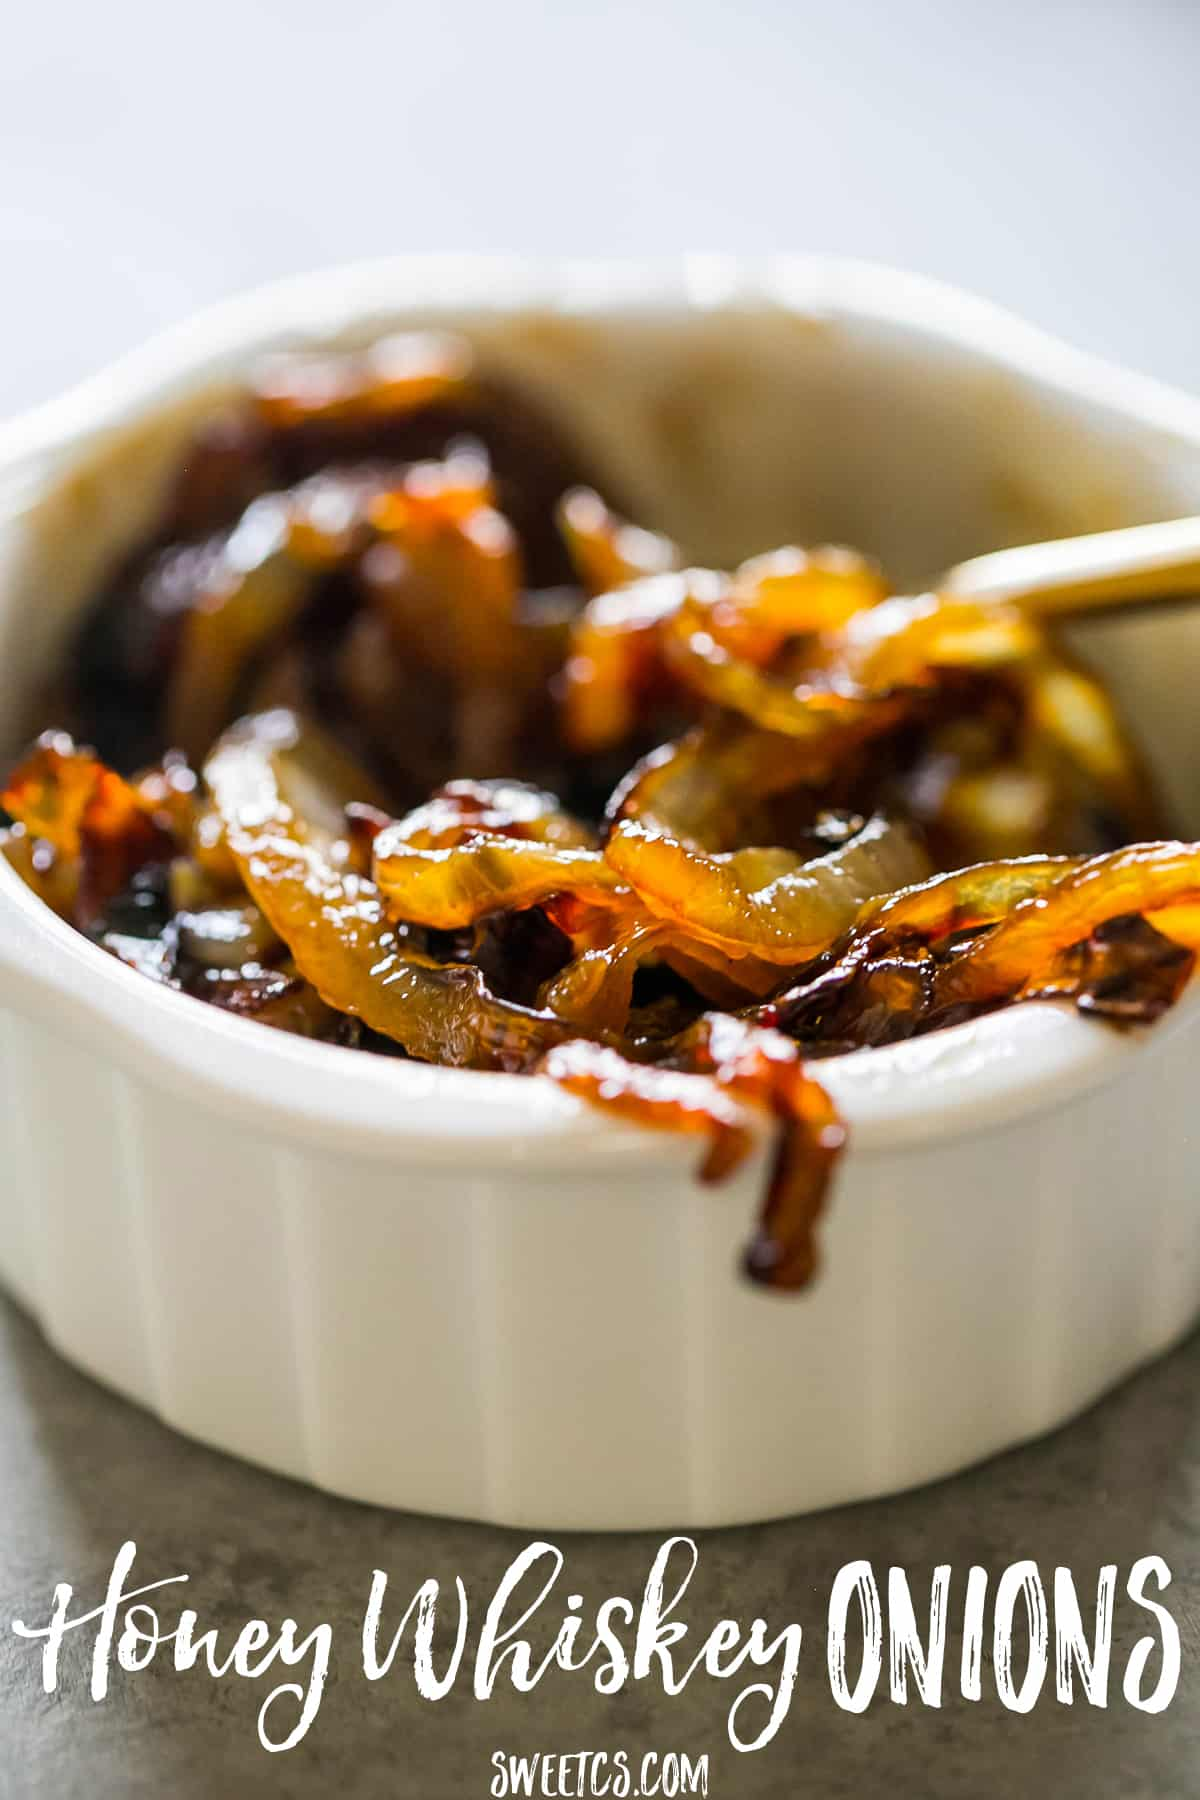 These honey whiskey caramelized onions are so delicious - perfect for burgers and sandwiches!